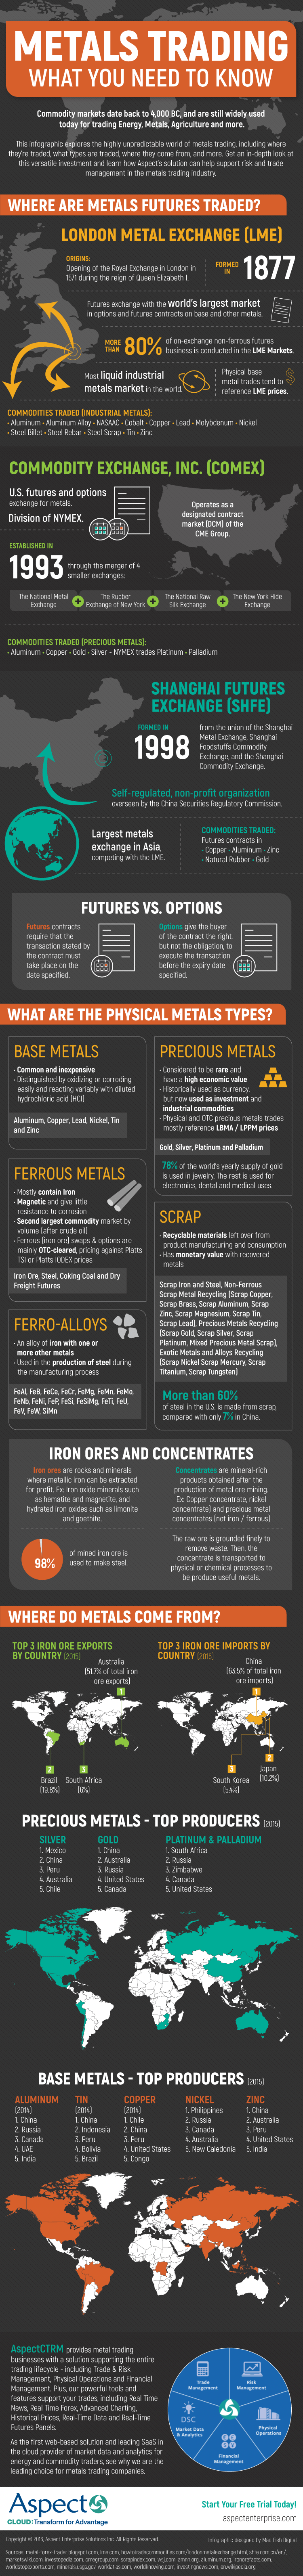 Metals-Trading-What-You-Need-to-Know-infographic-plaza